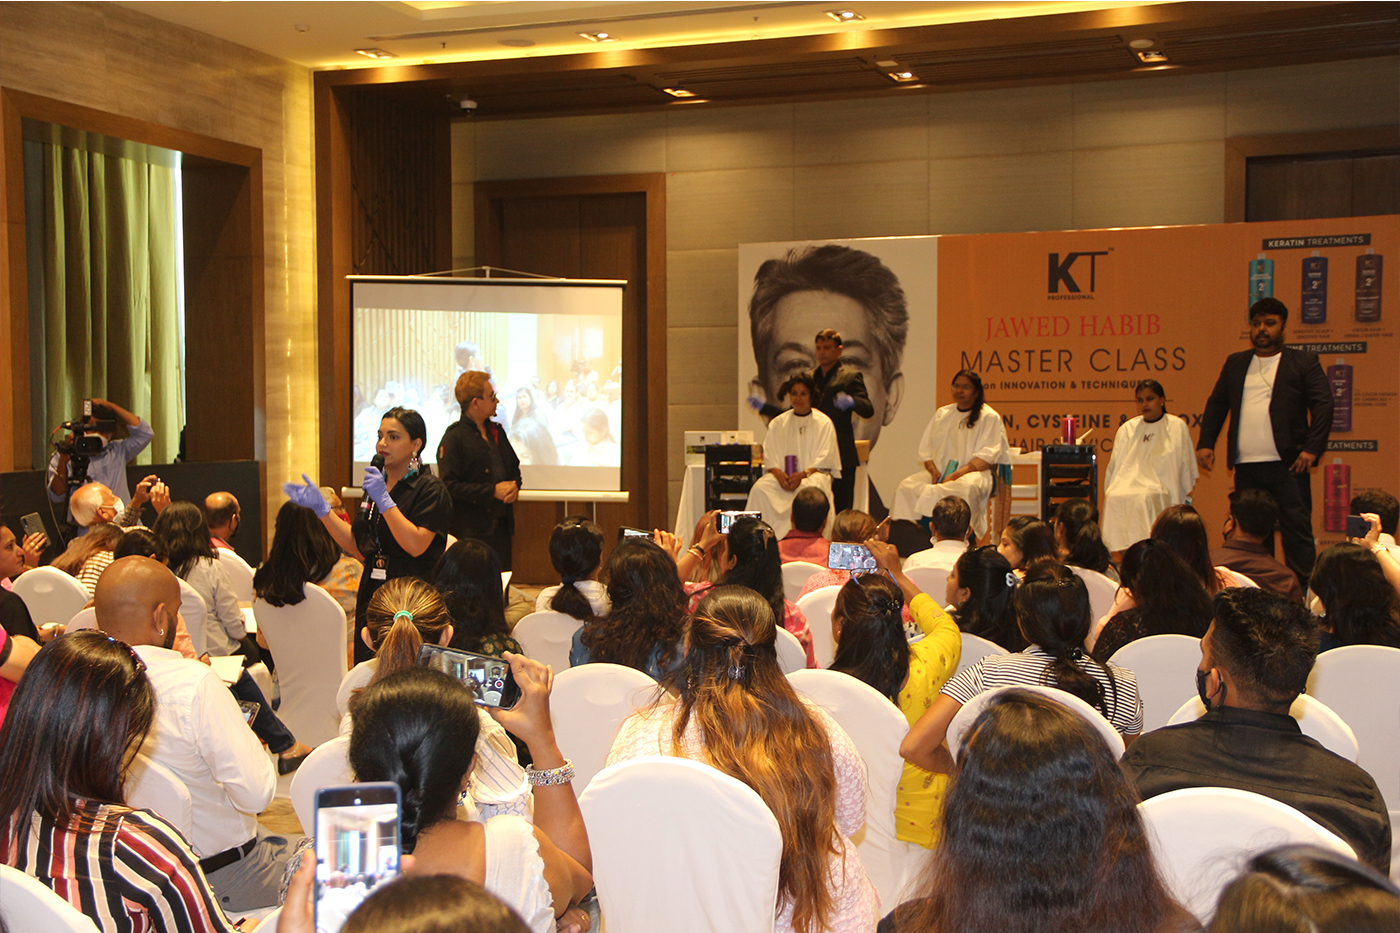 KT Professional signs Jawed Habib as brand spokesperson